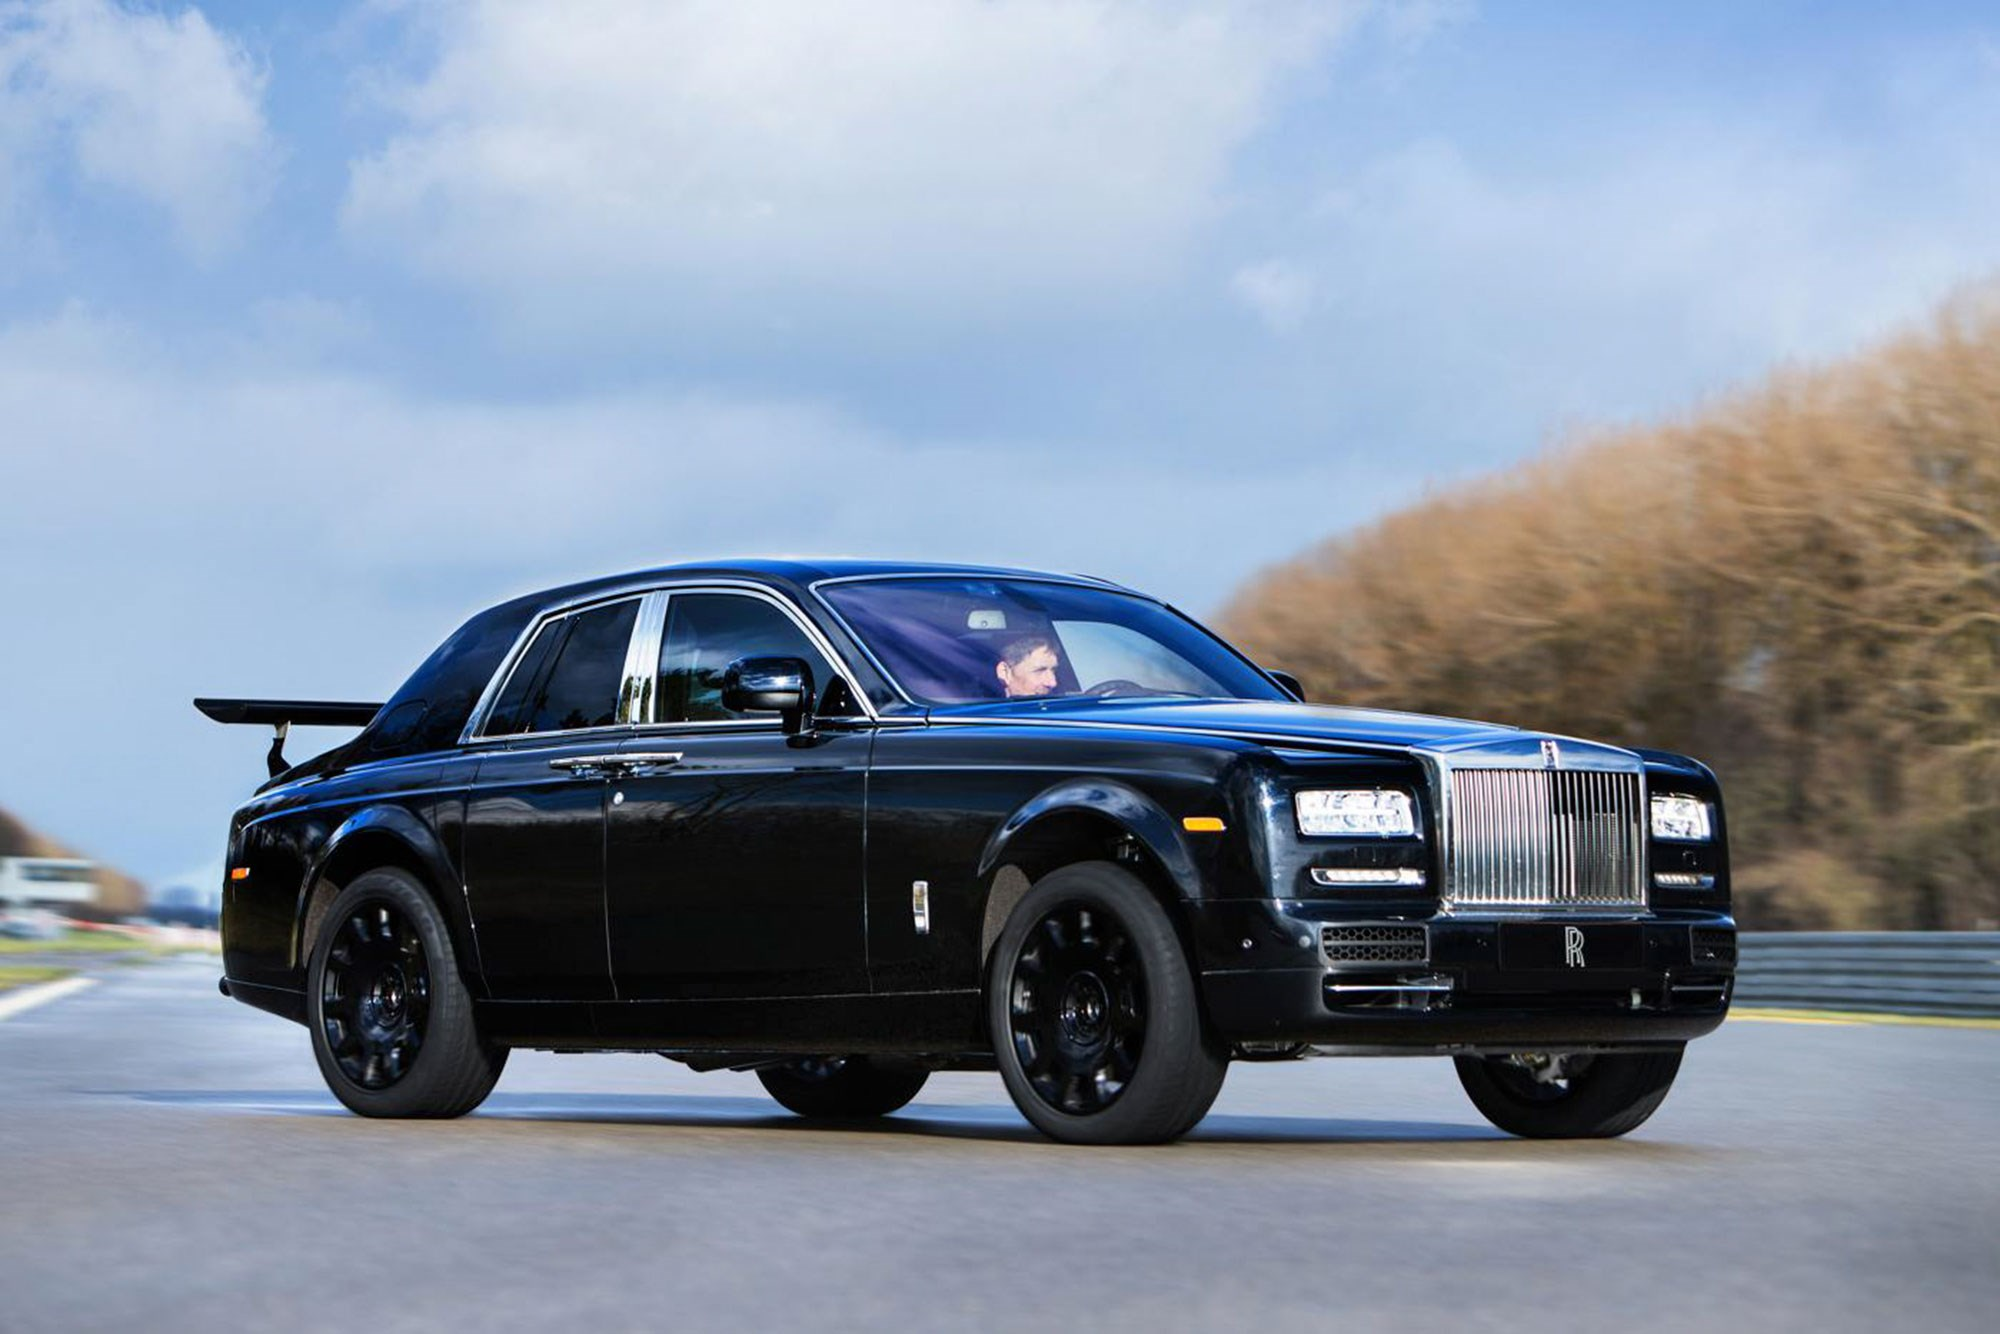 First look at the new Rolls Royce SUV sort of prototype revealed